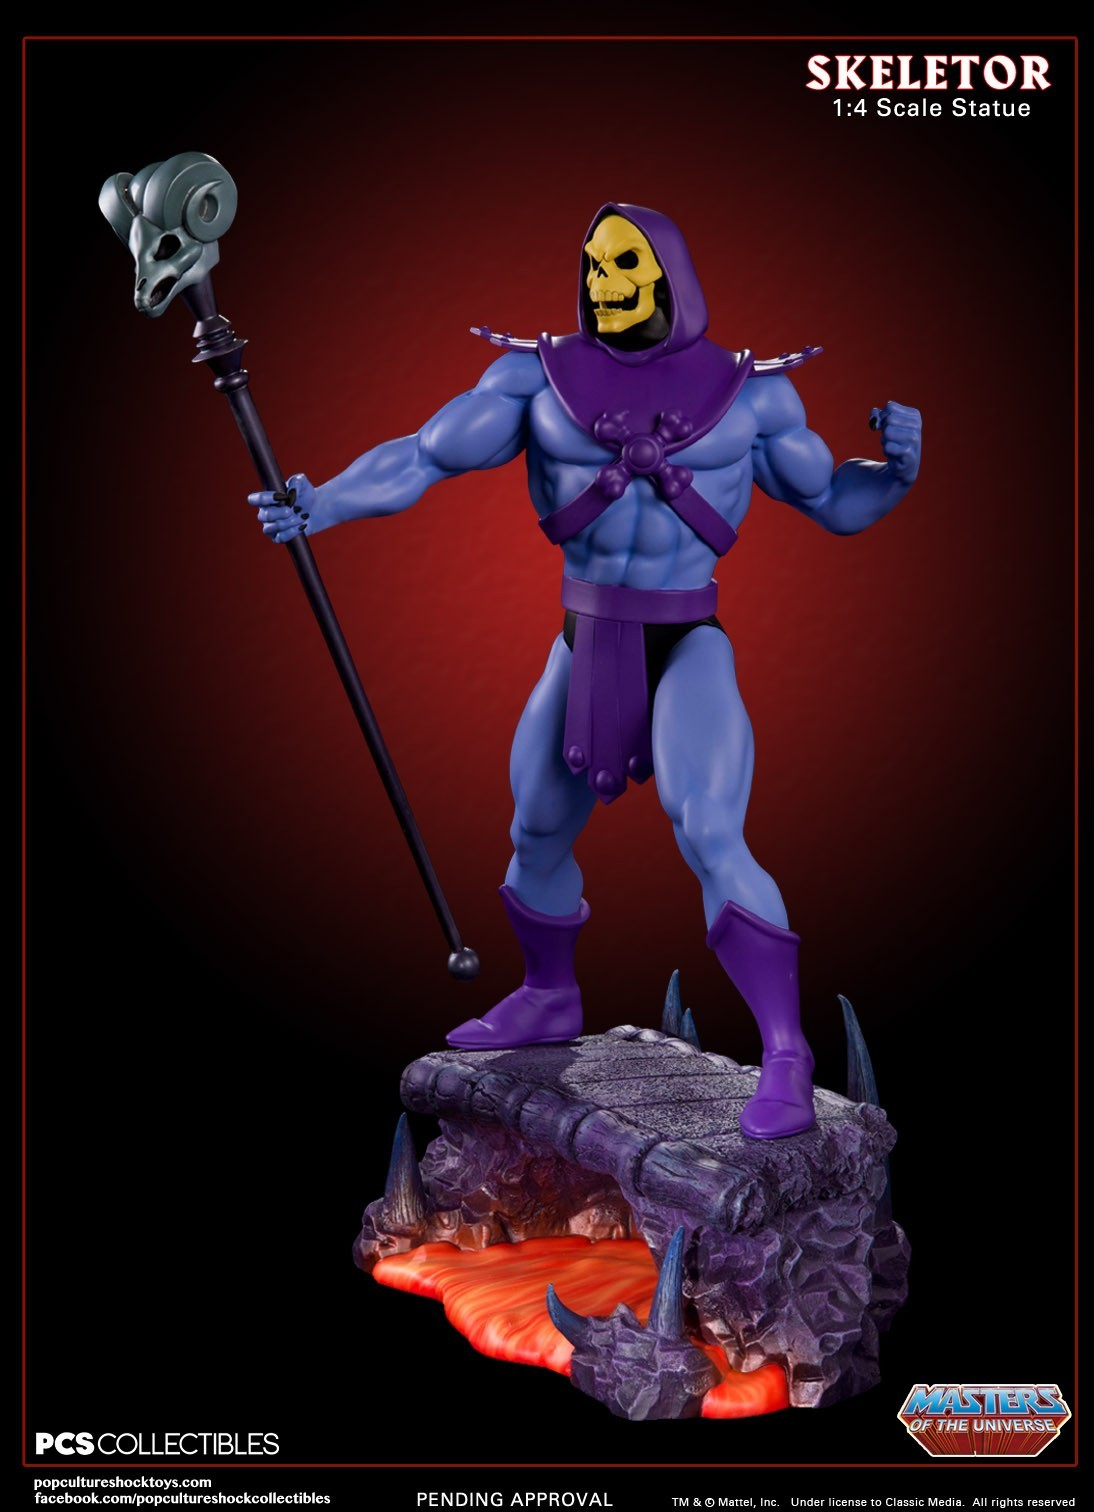 Alejandro pereira skeletor media g 1